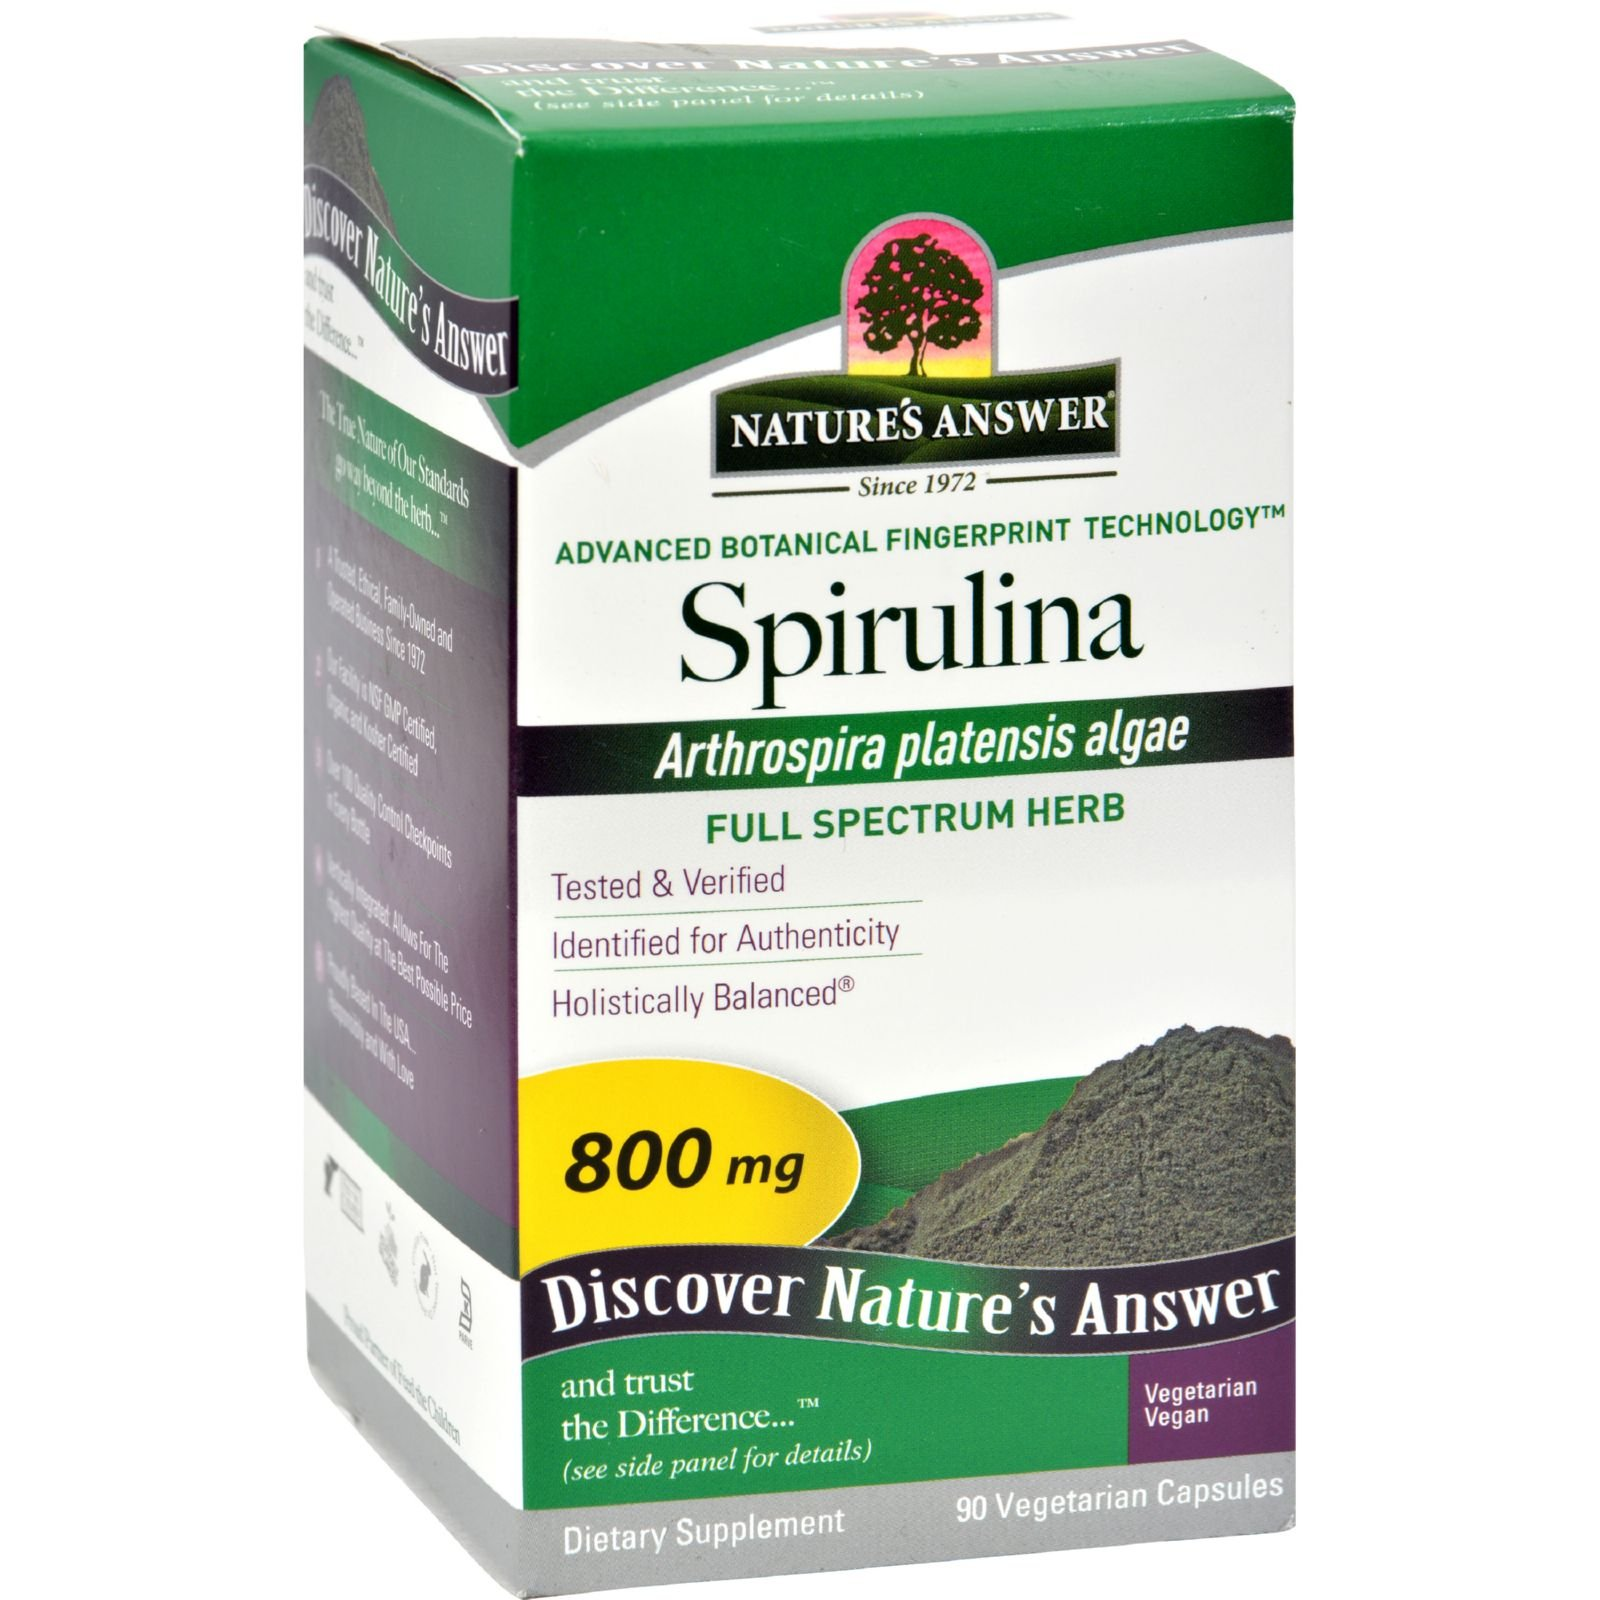 Natures Answer Spirulina - Promotes a Healthy Body - 800 mg - Tested - 90 Vegetarian Capsules (Pack of 3)